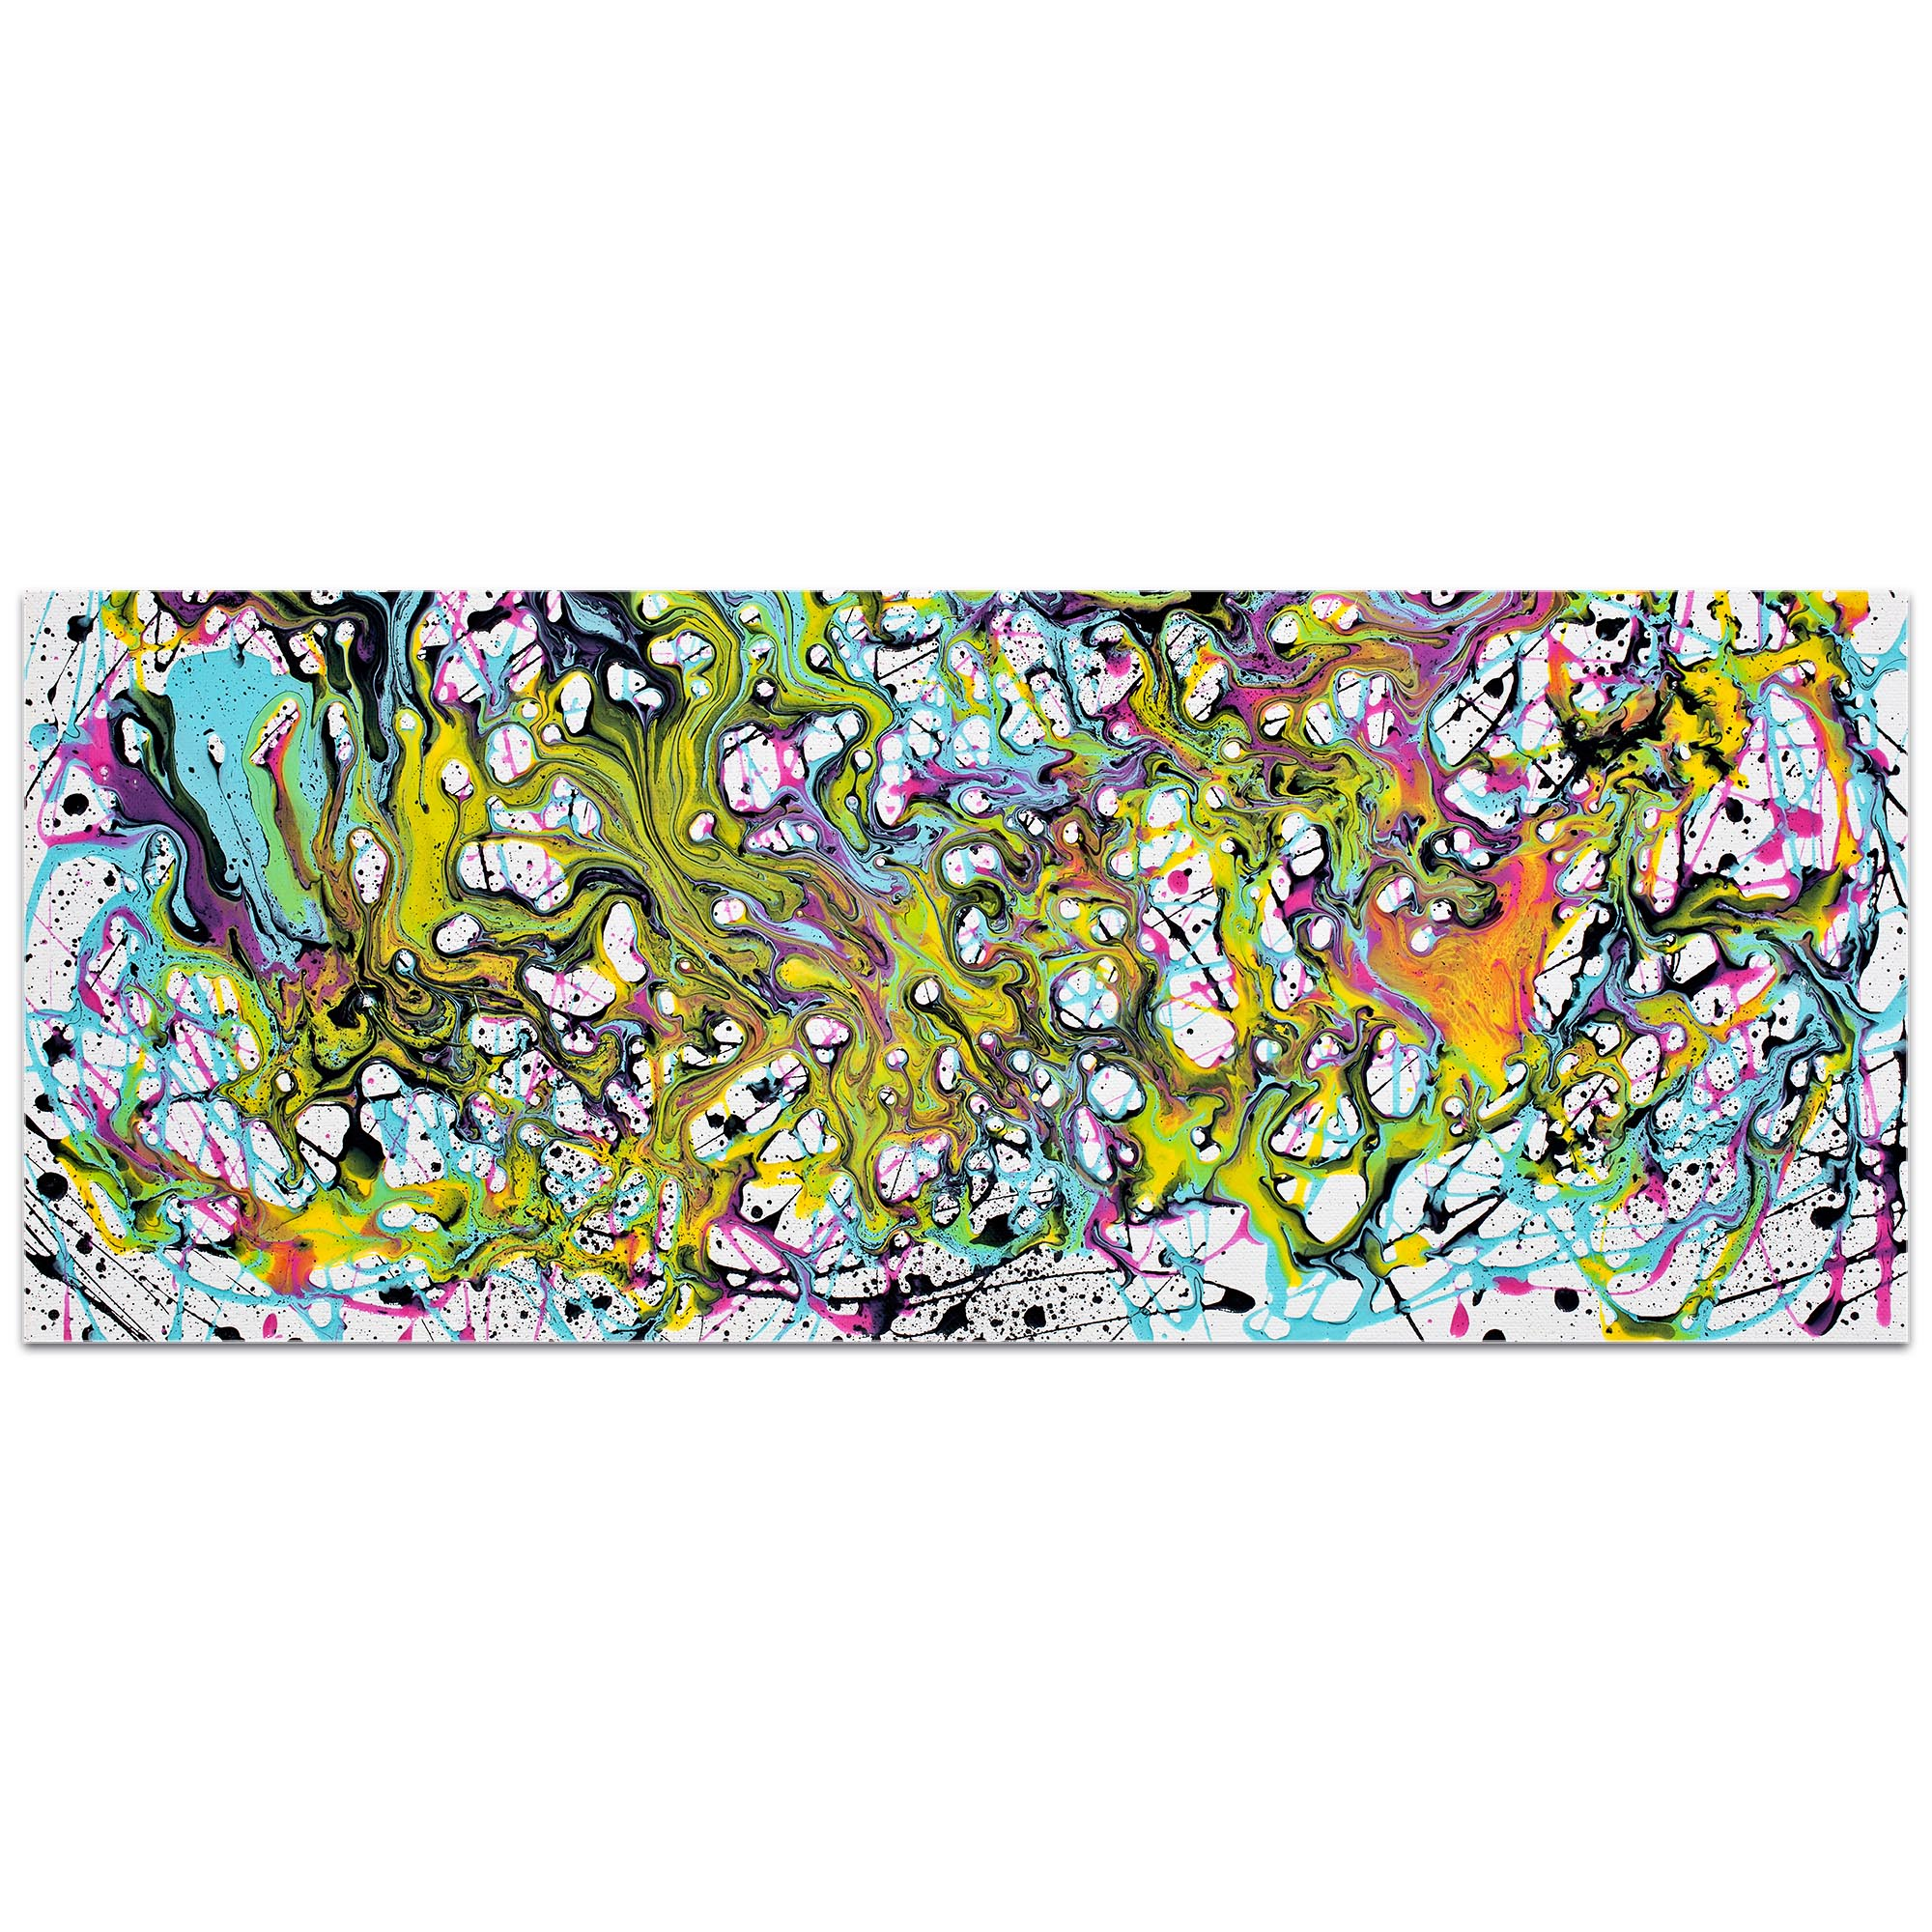 Abstract Wall Art 'Where Is My Mind' - Colorful Urban Decor on Metal or Plexiglass - Image 2